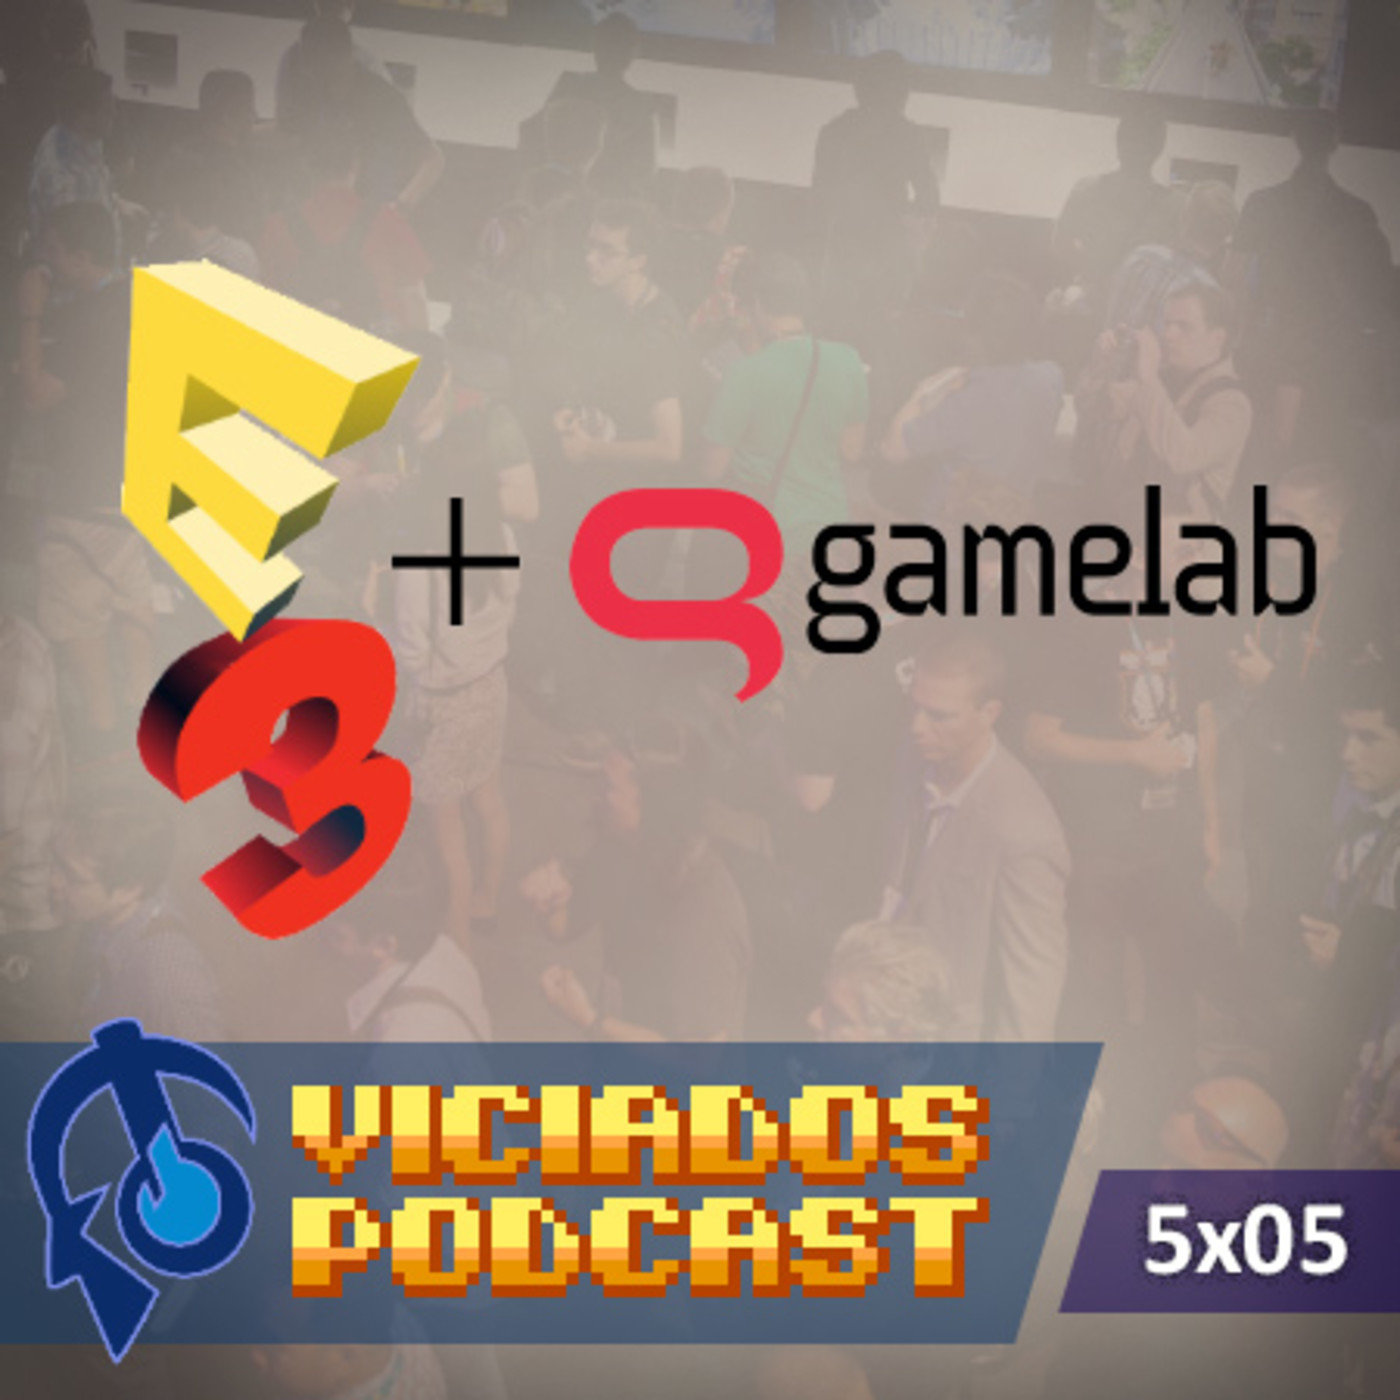 Viciados Podcast 5x05 - Resumen E3 2016 + Gamelab (30-06-2016)